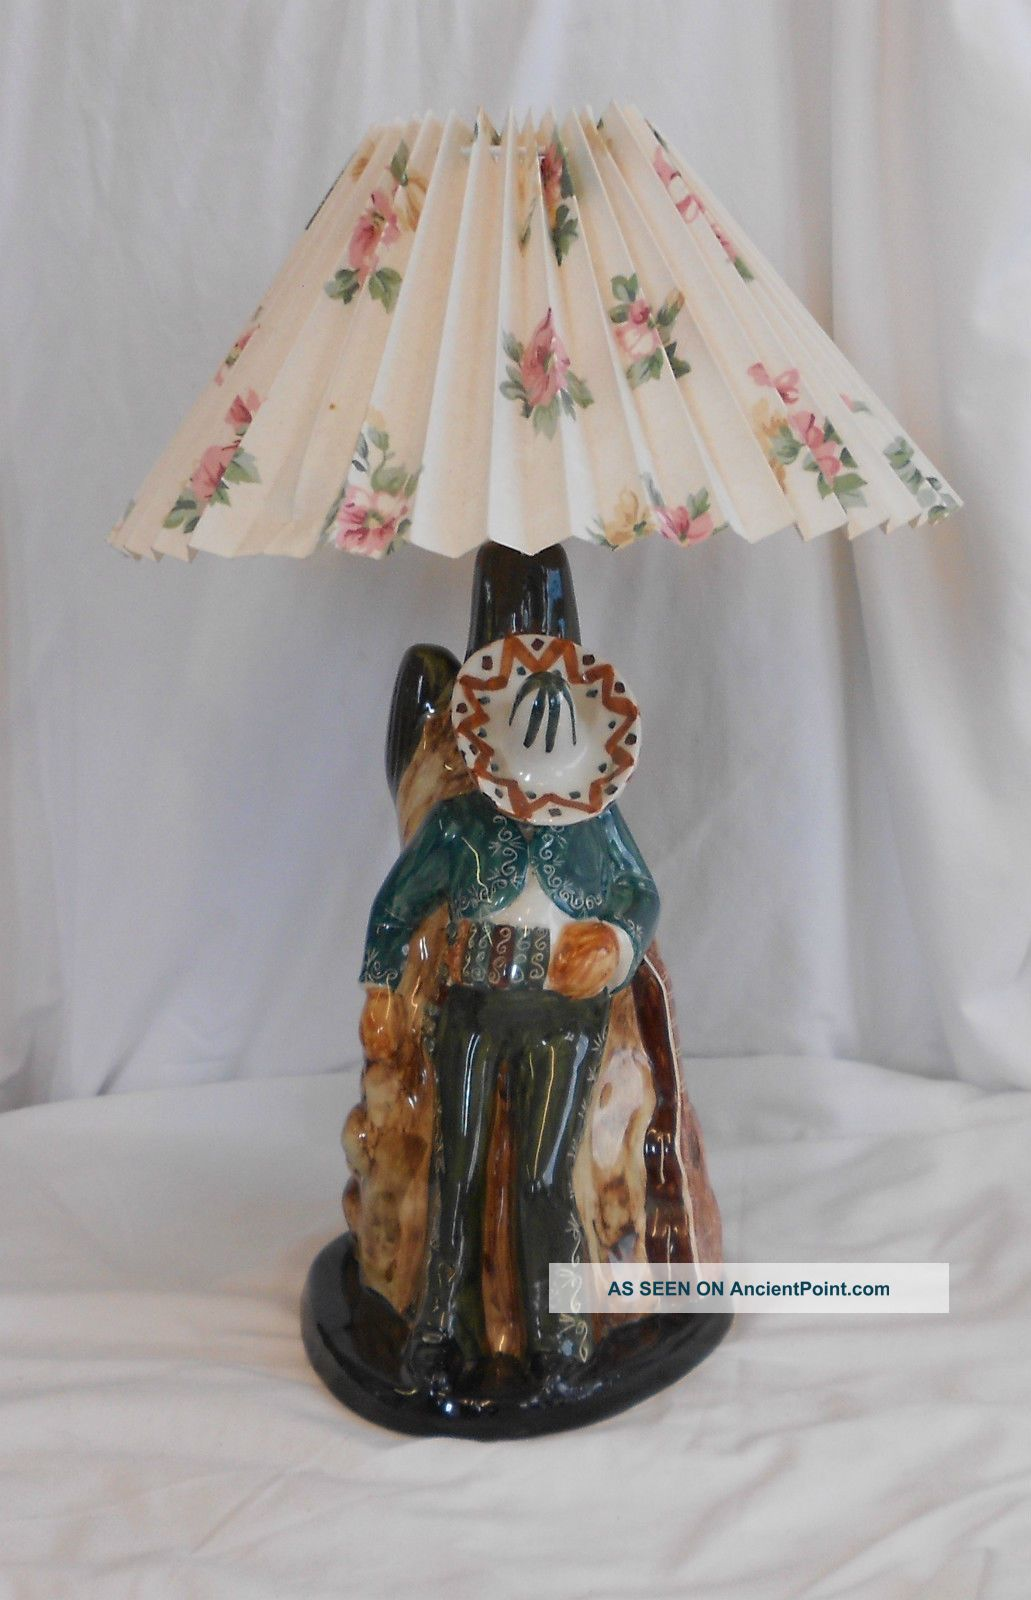 Stunning Vintage Collectable Rare Unusual Mexican Gaucho Ceramic Table Lamp 20th Century photo